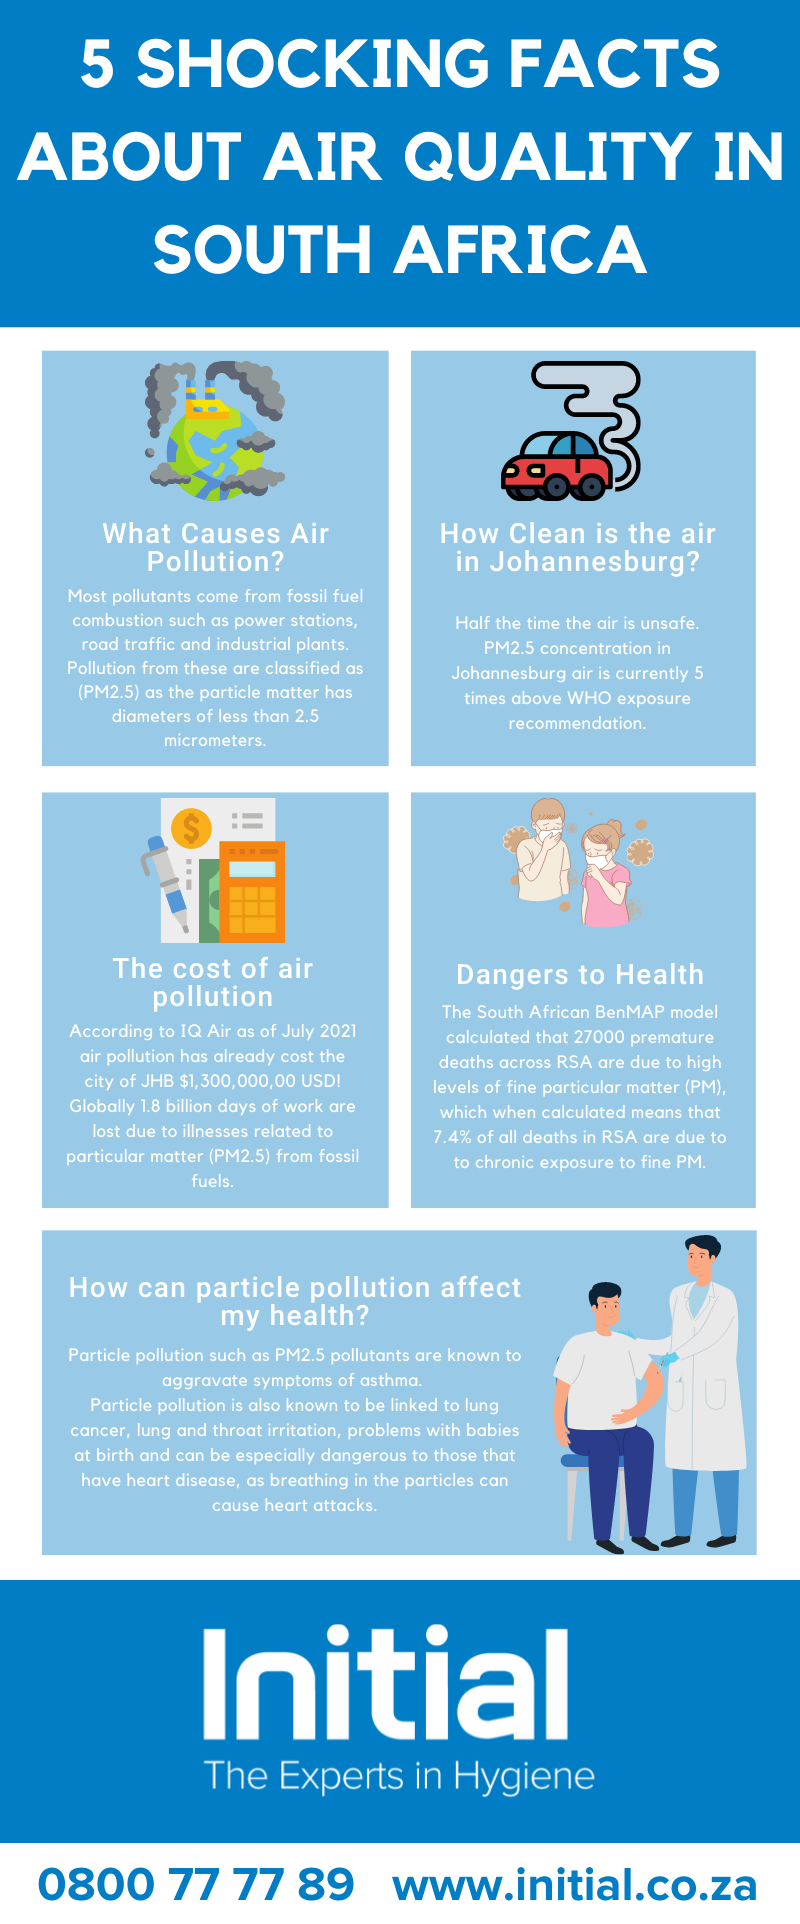 5 shocking facts about air quality in south africa